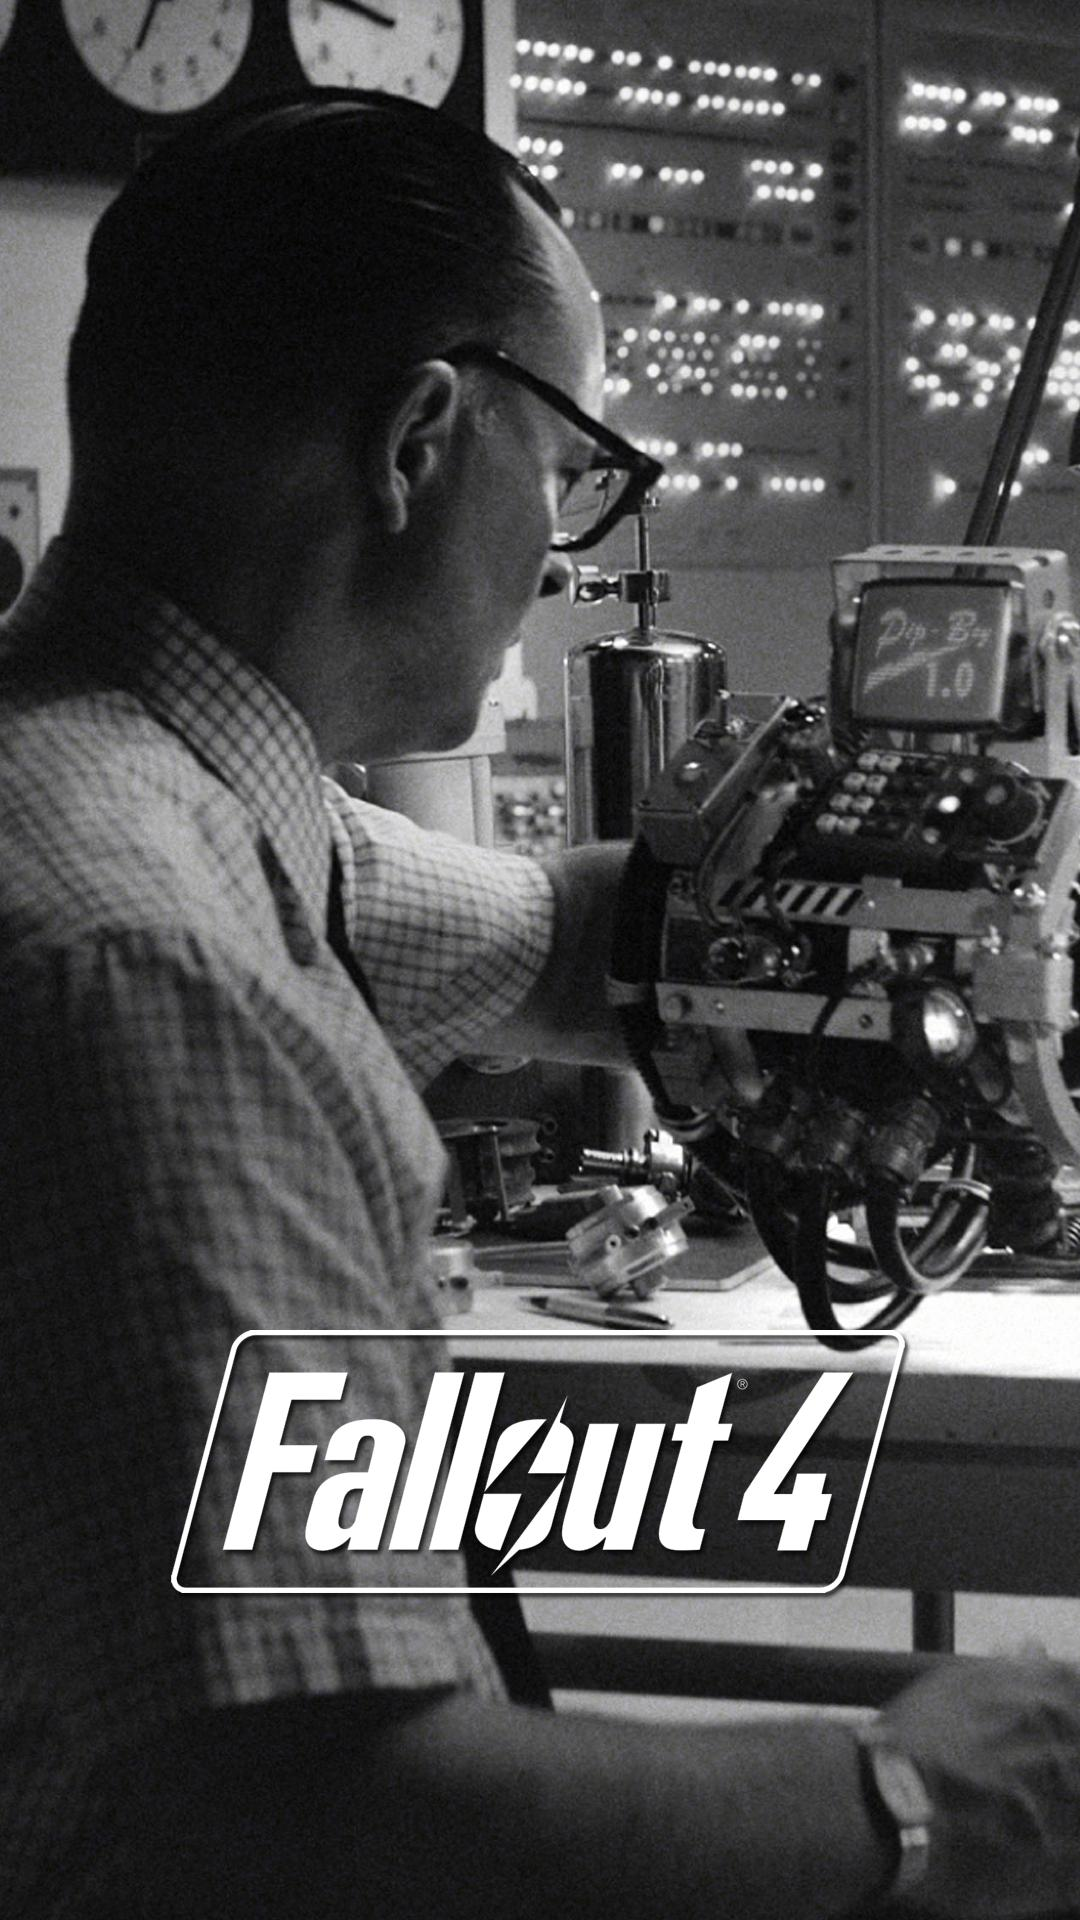 18 Fallout 4 Wallpapers for Mobile! - Fallout 4 / FO4 mods